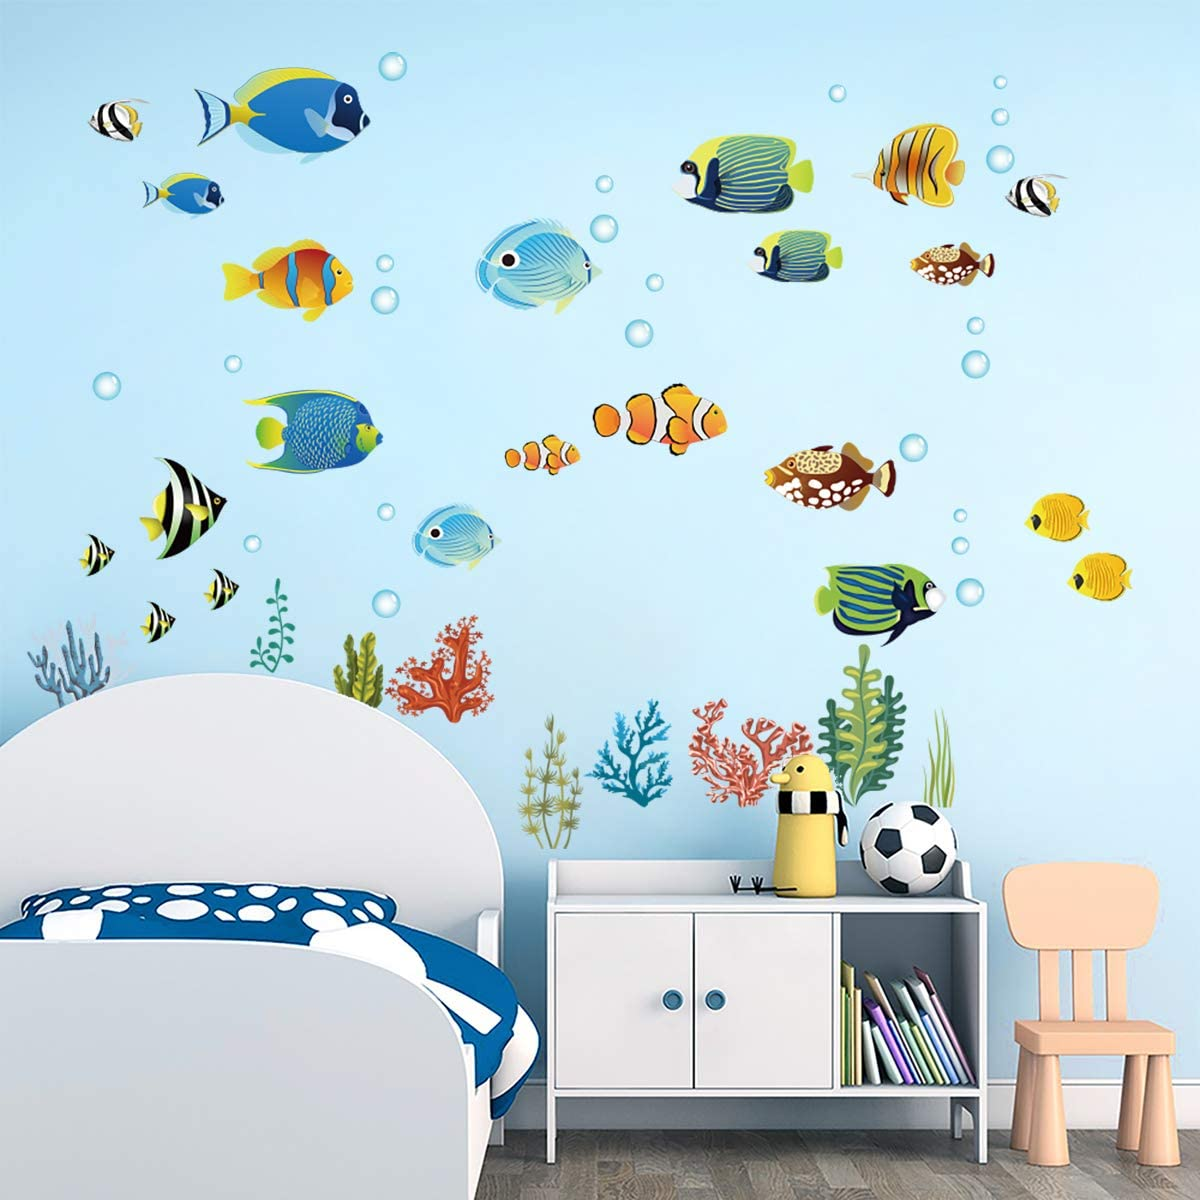 Decalmile Tropical Fish Wall Decals Under The Sea Wall Stickers Baby Nursery Kids Bedroom Bathroom Wall Decor Wall Stickers